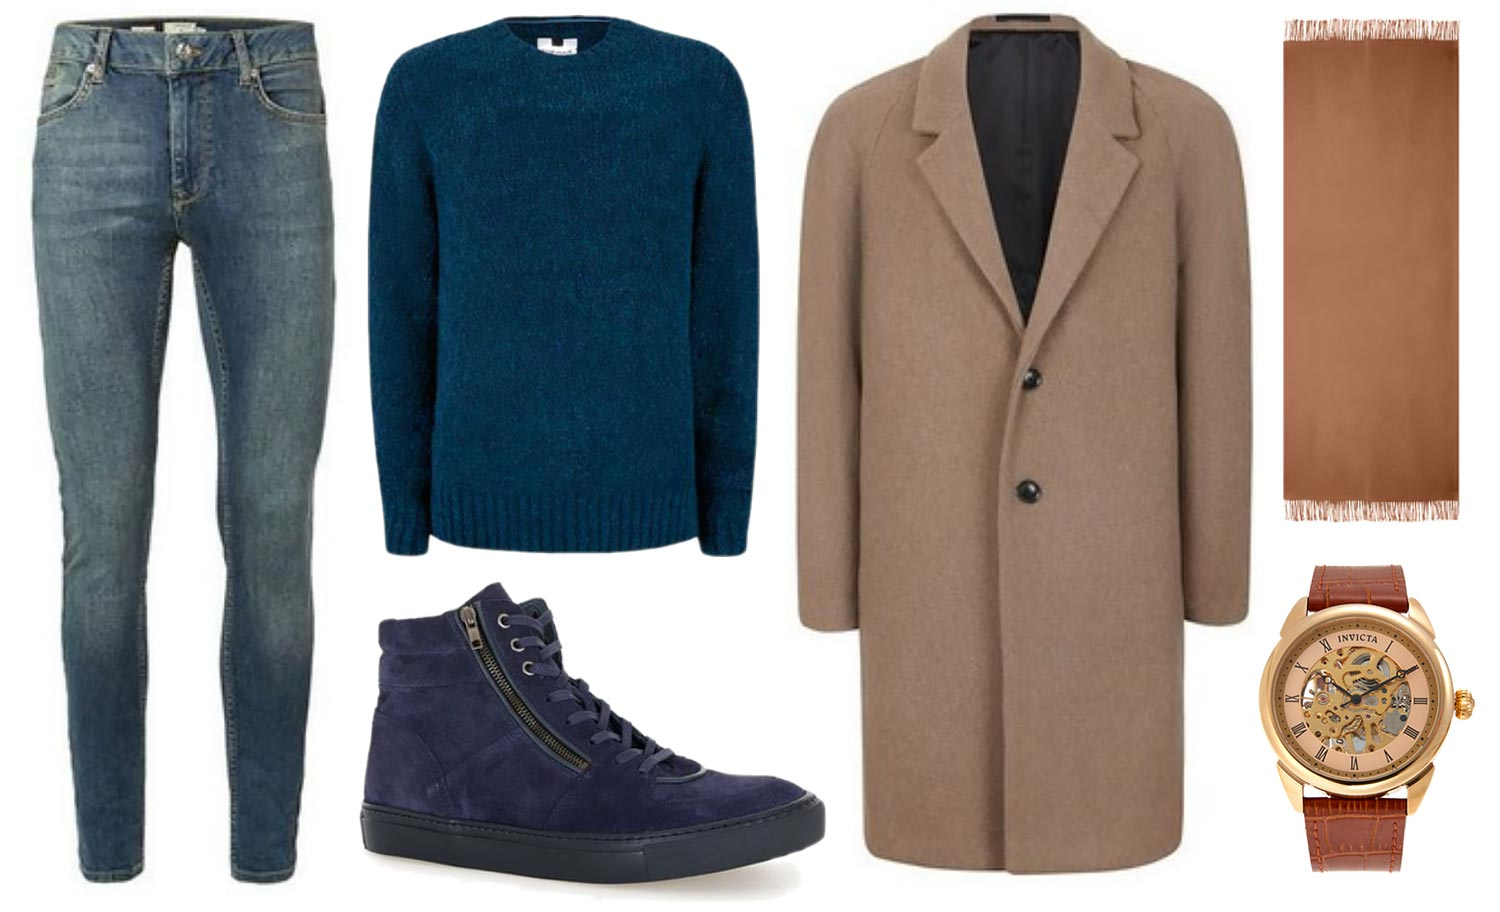 mens-dickies-outfit-fashionable